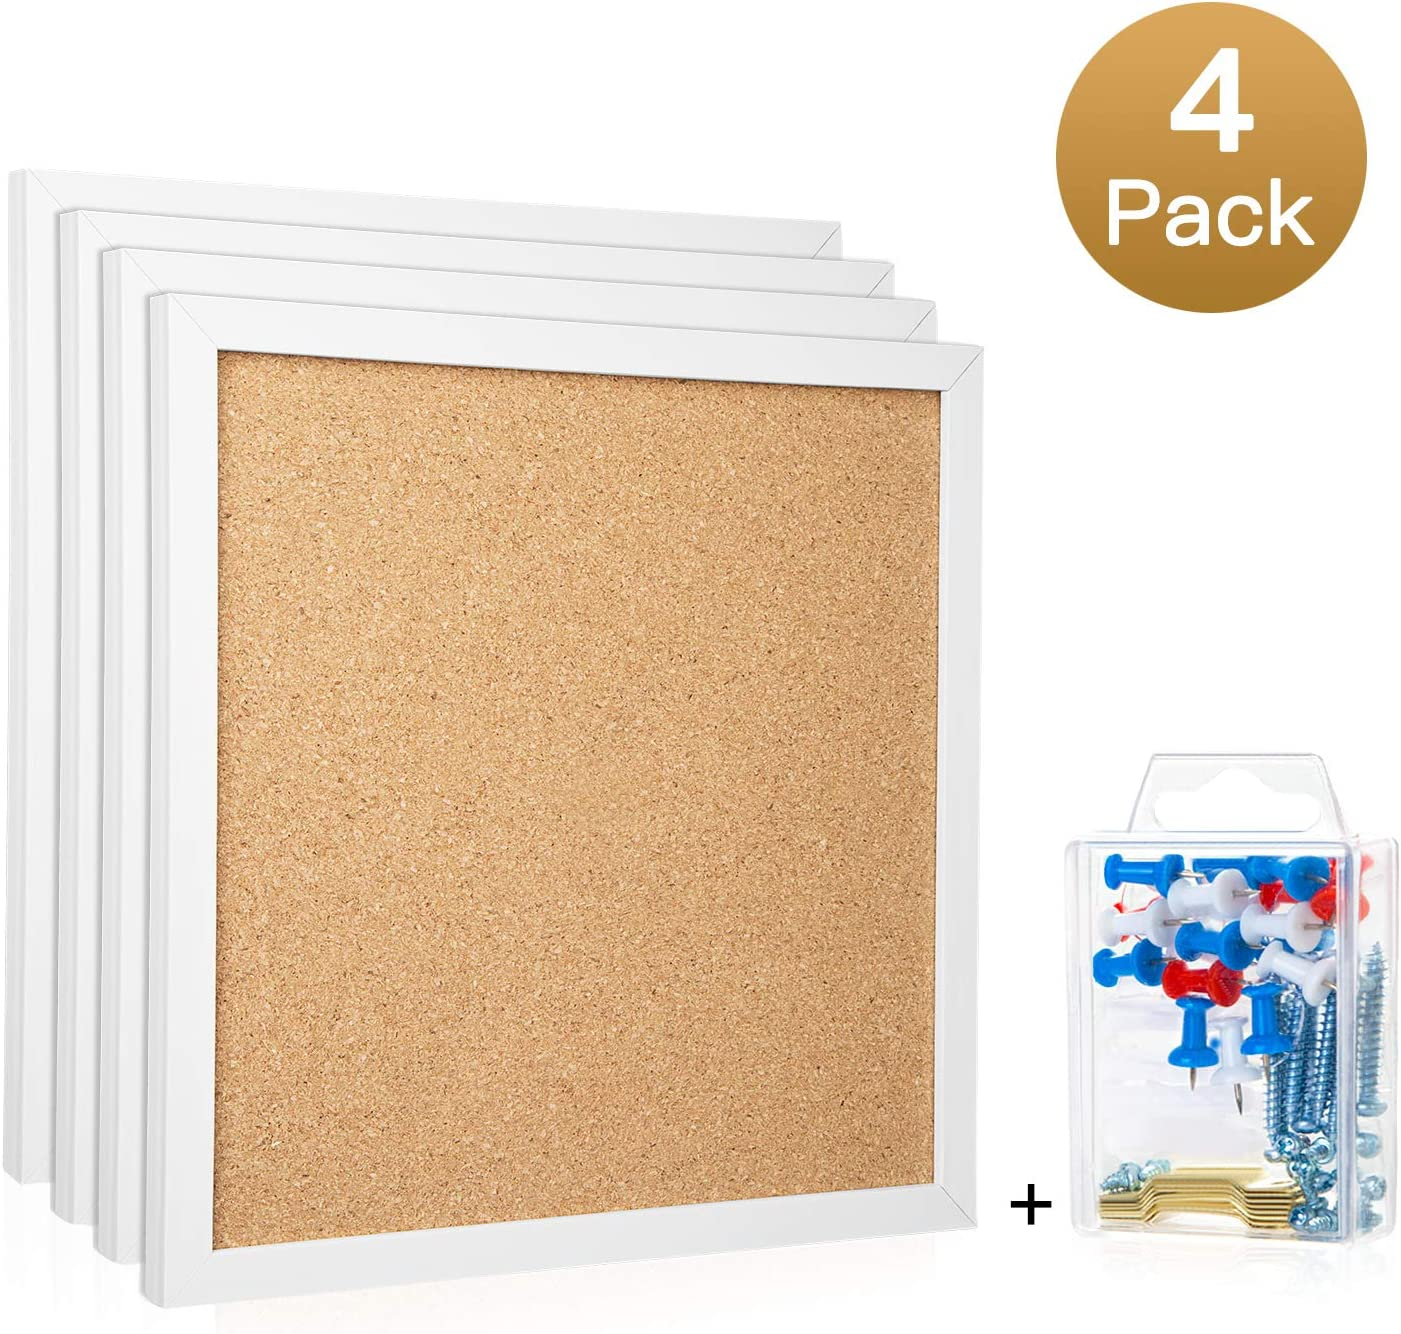 "HBlife Cork Board Bulletin Board 12""X 12"" Square Wall Tiles,Modern White Framed Corkboard for School, Home & Office (Set Including 20 Push Pins,Hardware and Template)"